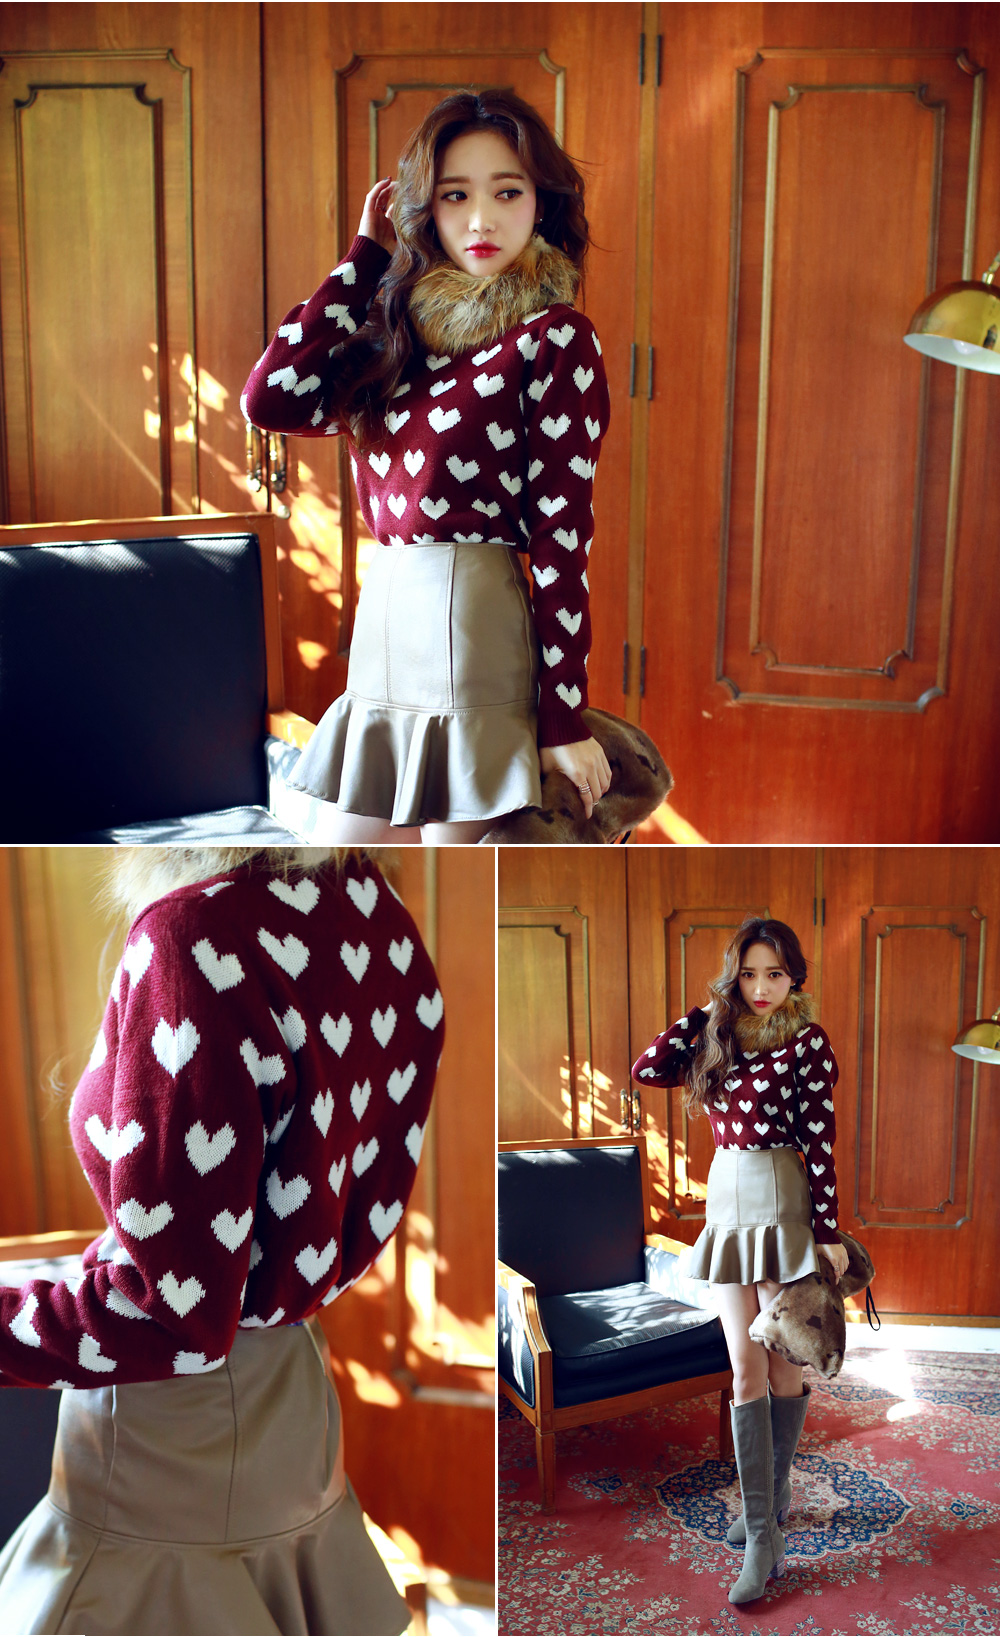 CHUU Heart Patterned Knit Pullover